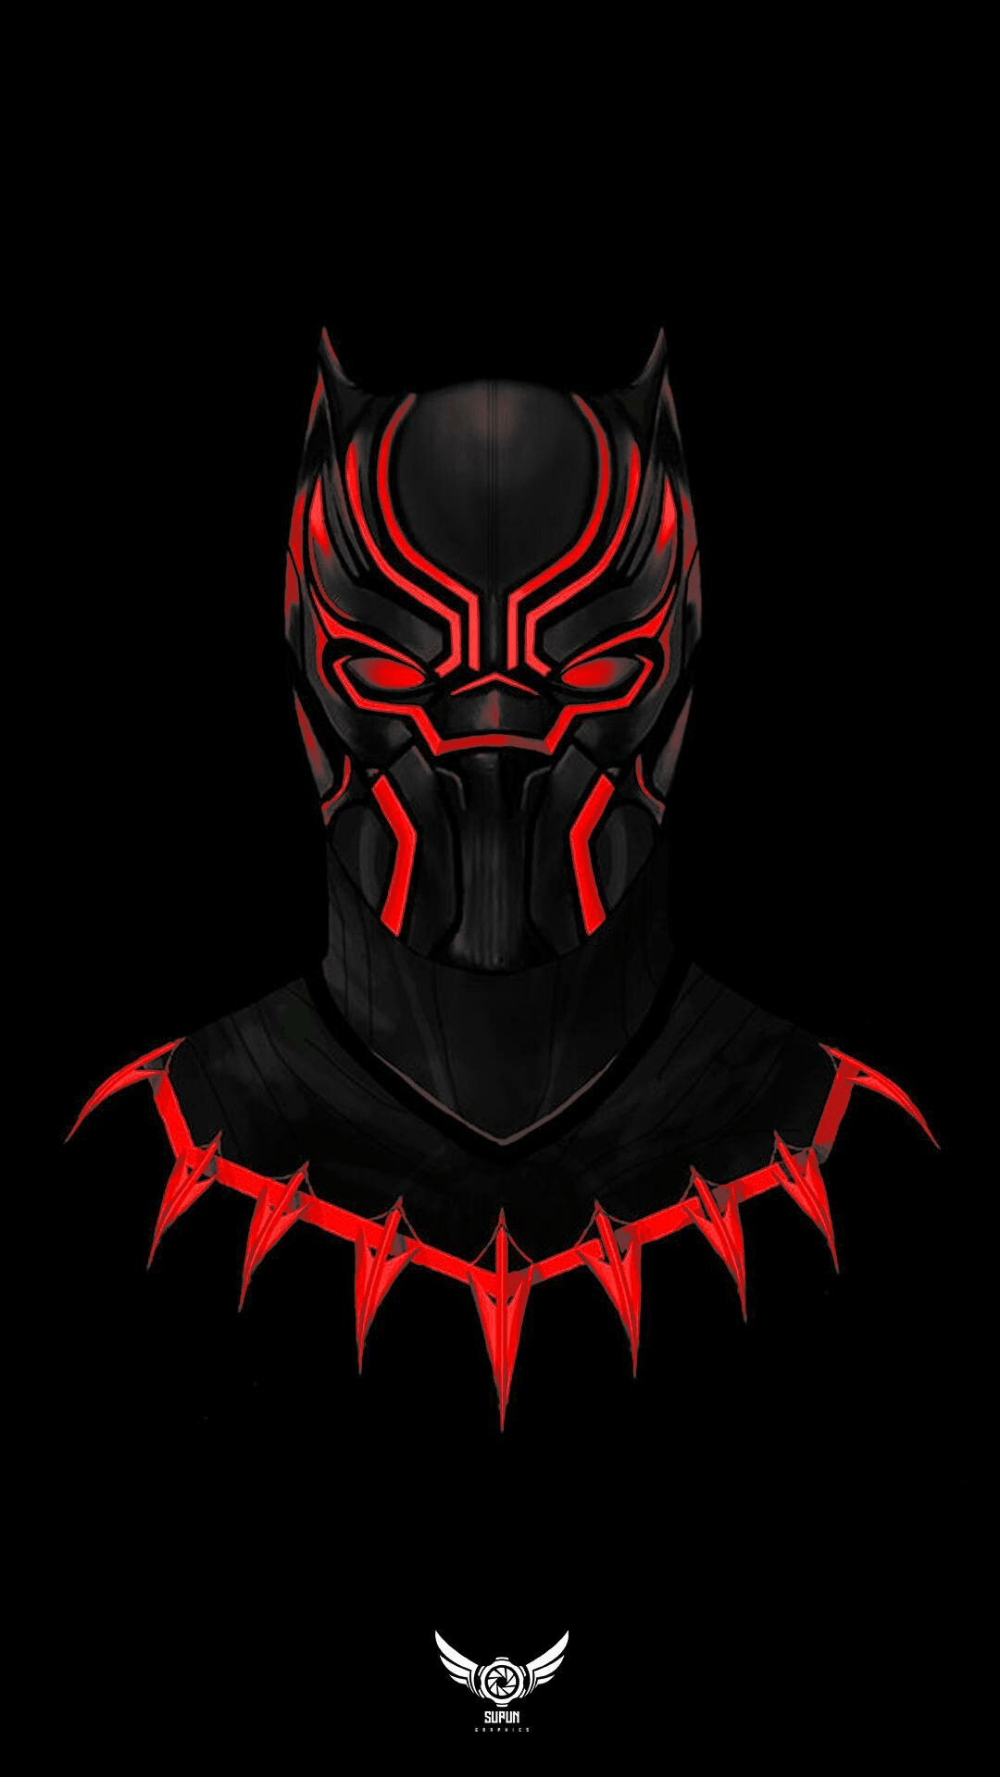 Red Black Panther Wallpapers Top Free Red Black Panther Backgrounds Wallpaperaccess